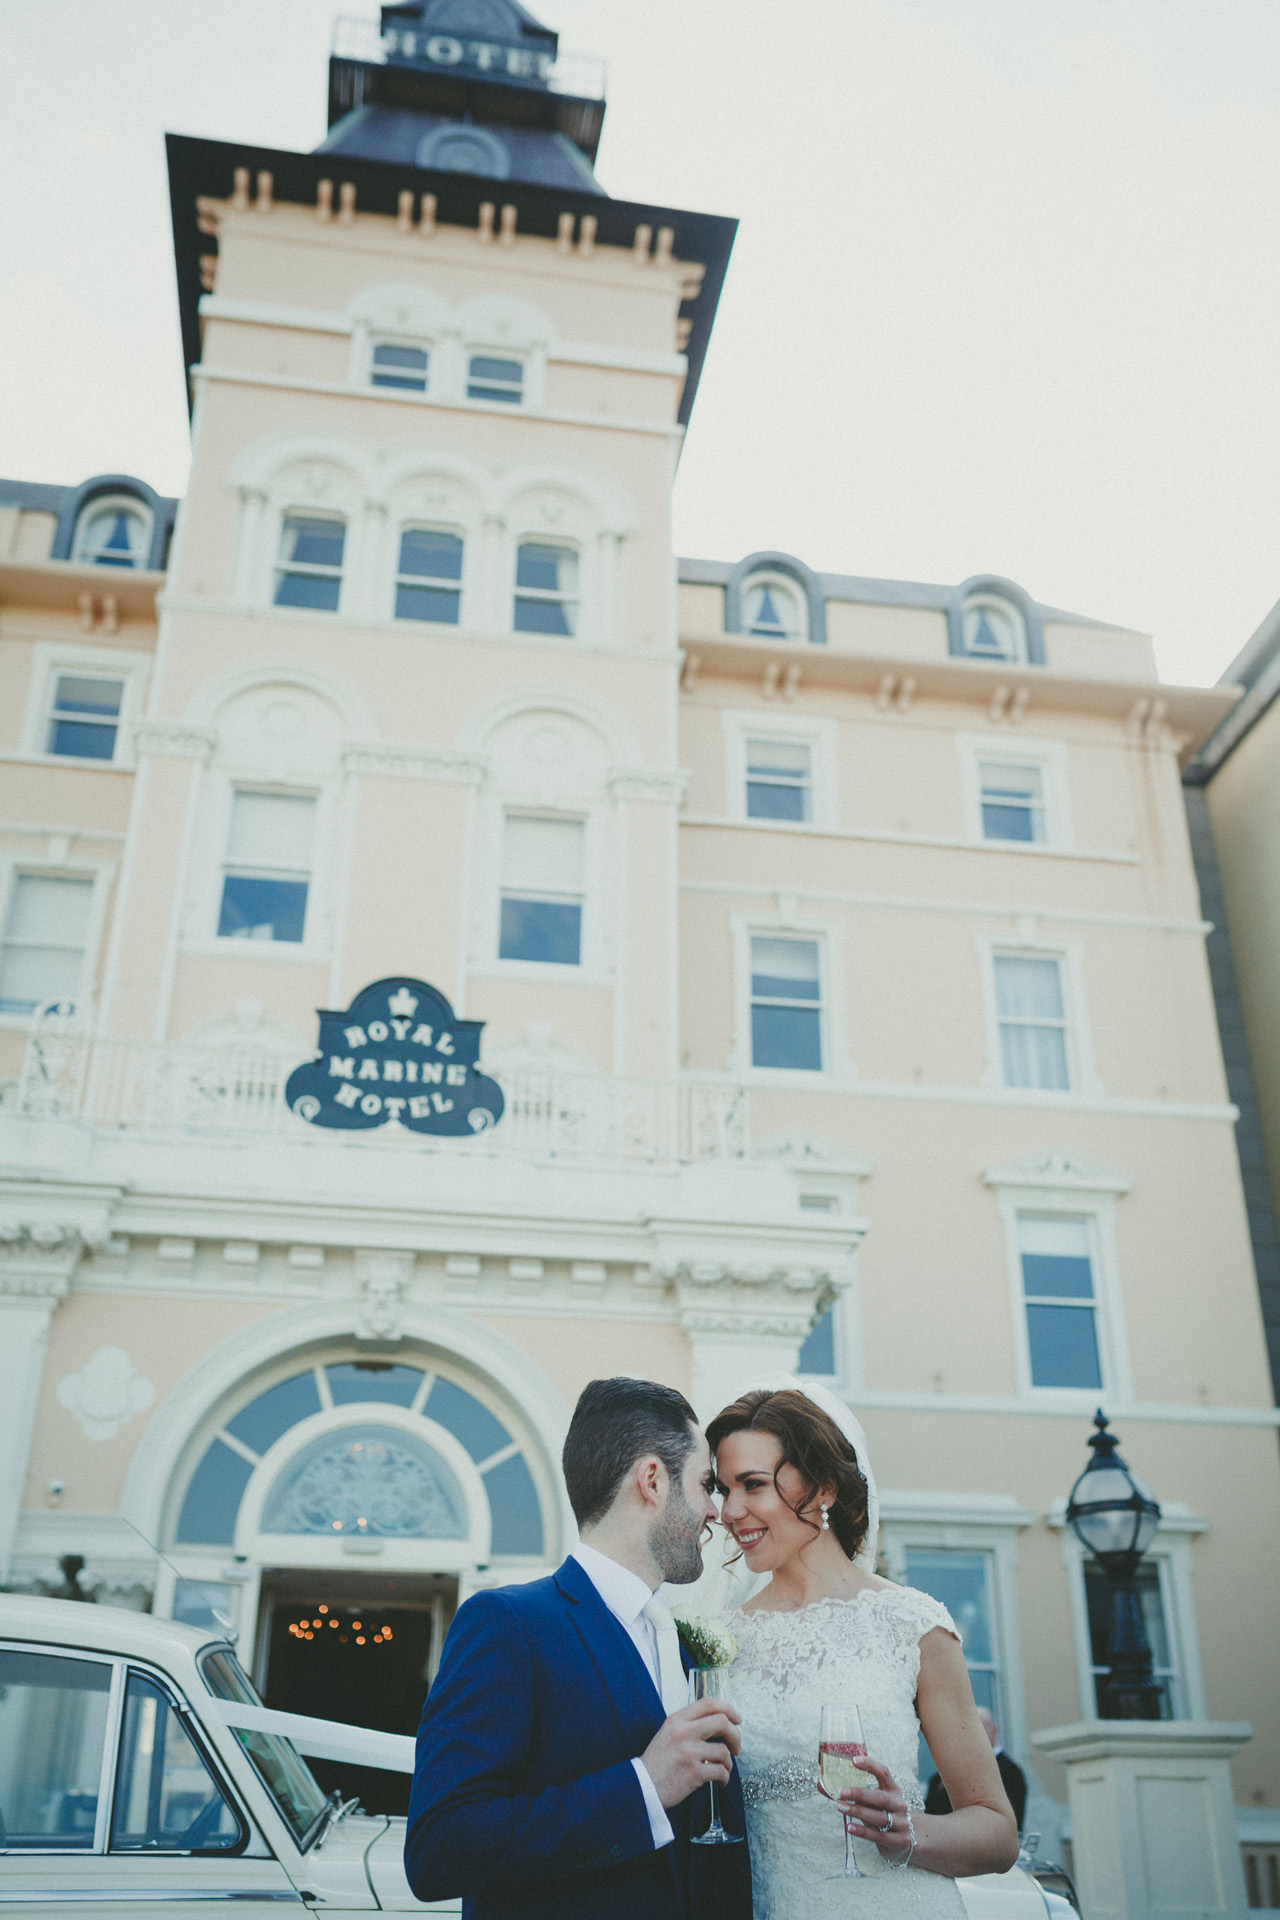 Royal-marine-hotel-wedding-photos11